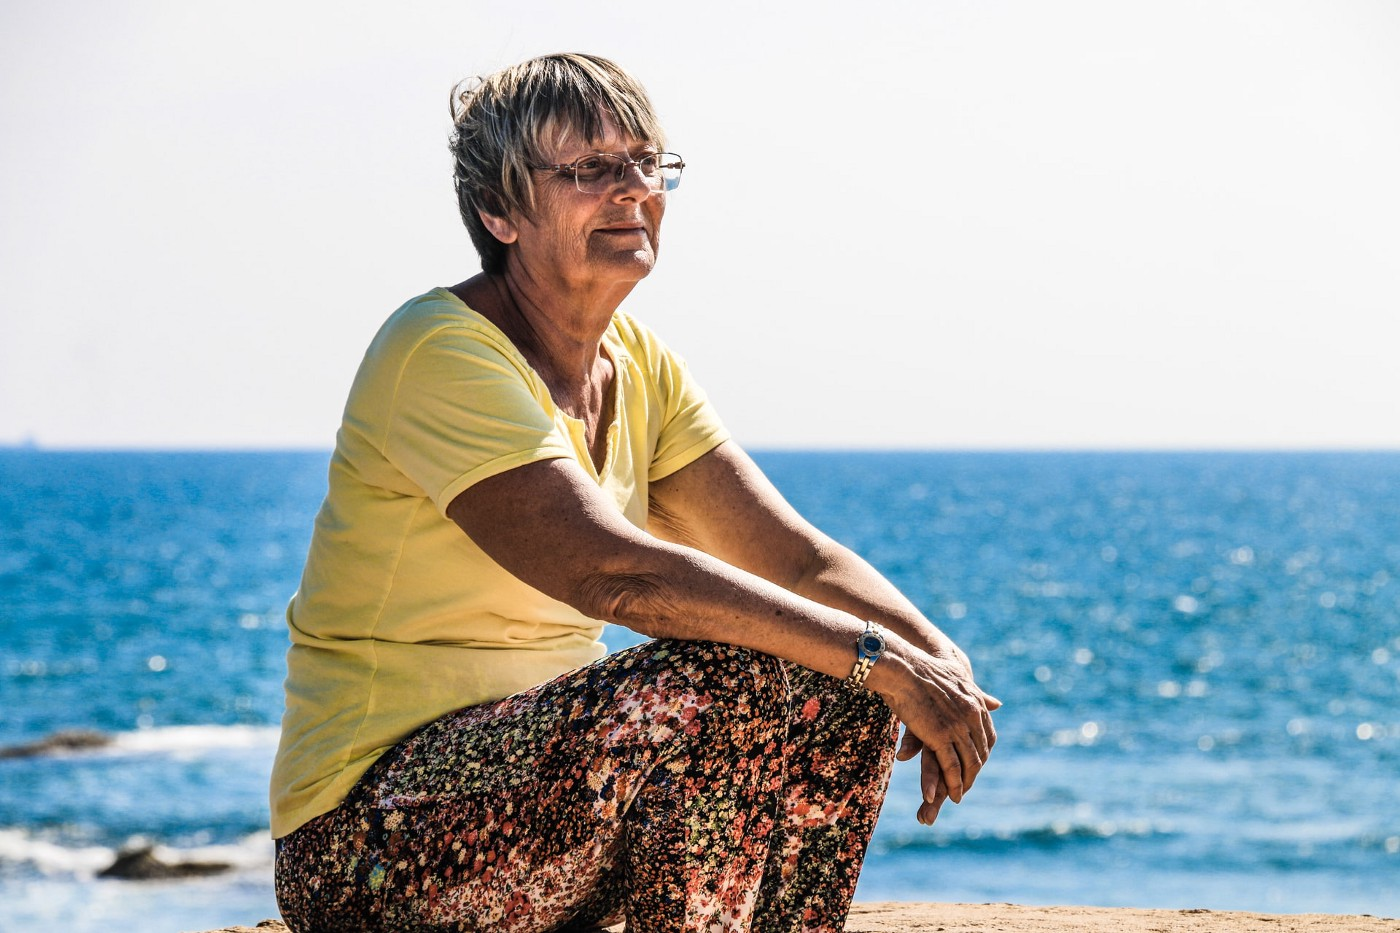 Older woman with glasses sitting on a beach with ocean behind her.